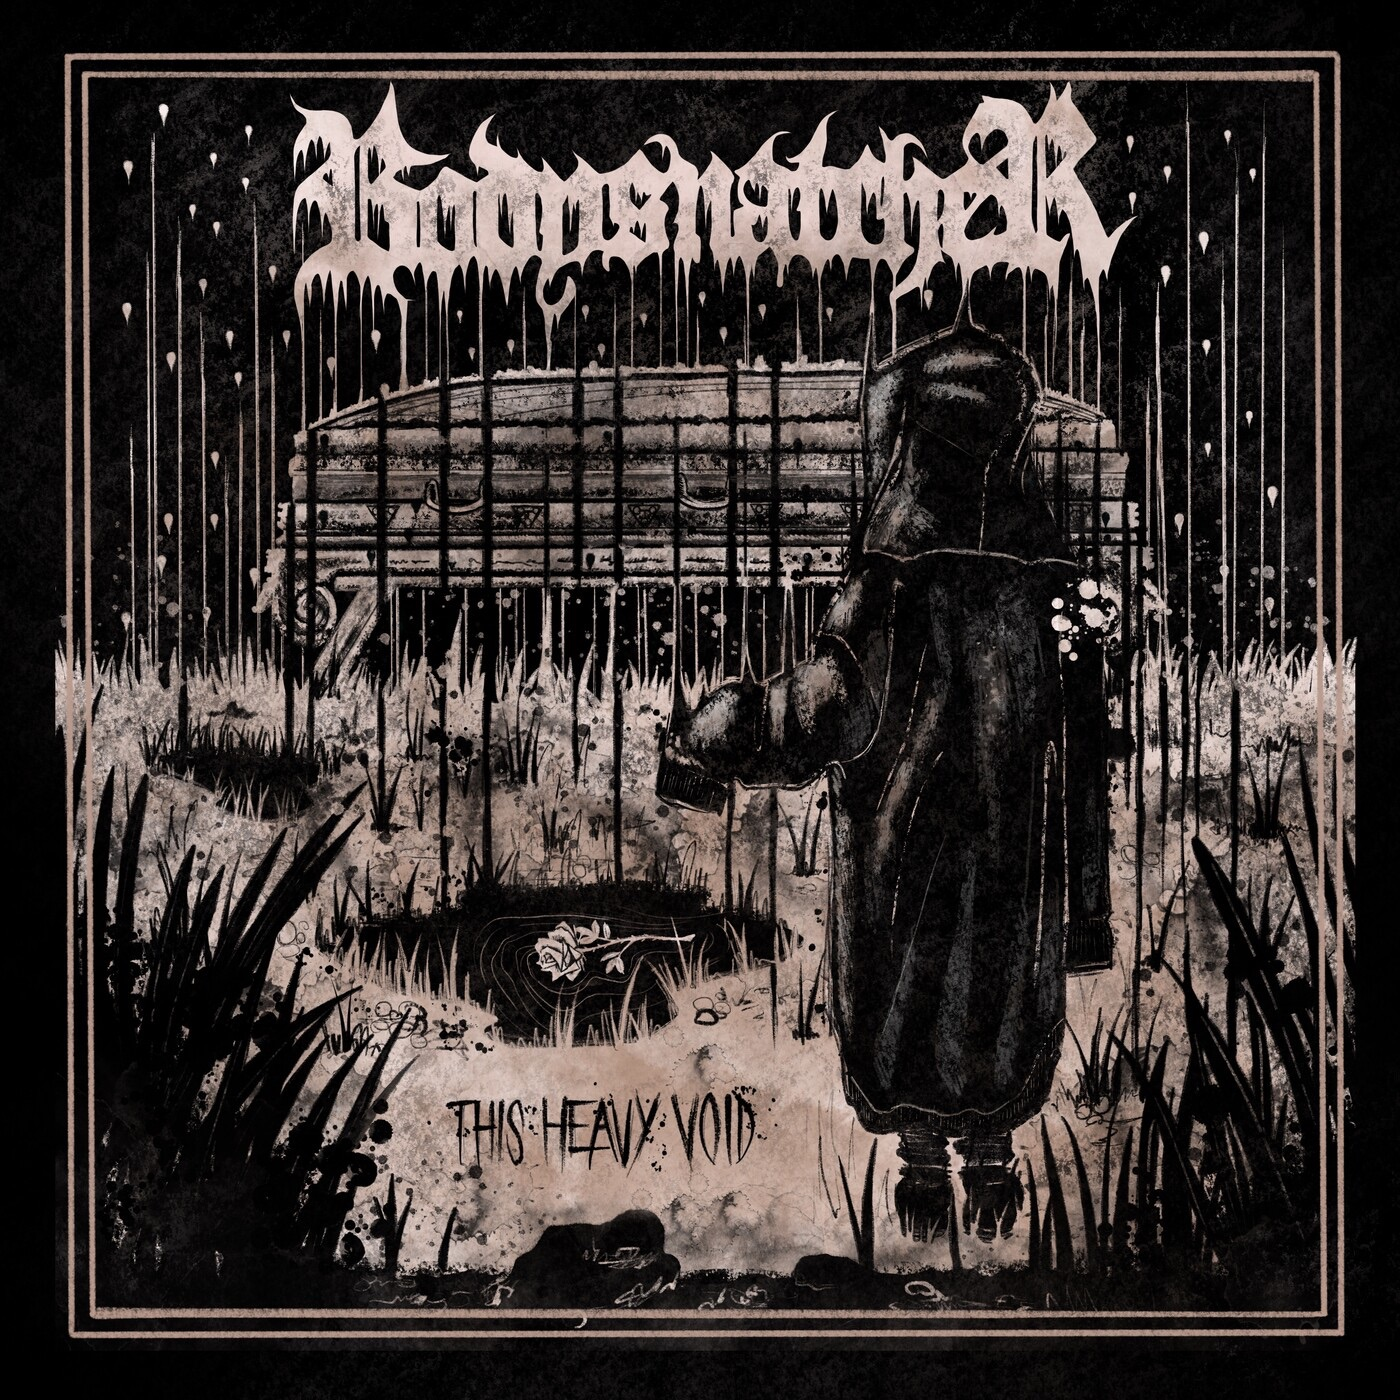 Bodysnatcher - Merciless [single] (2019)